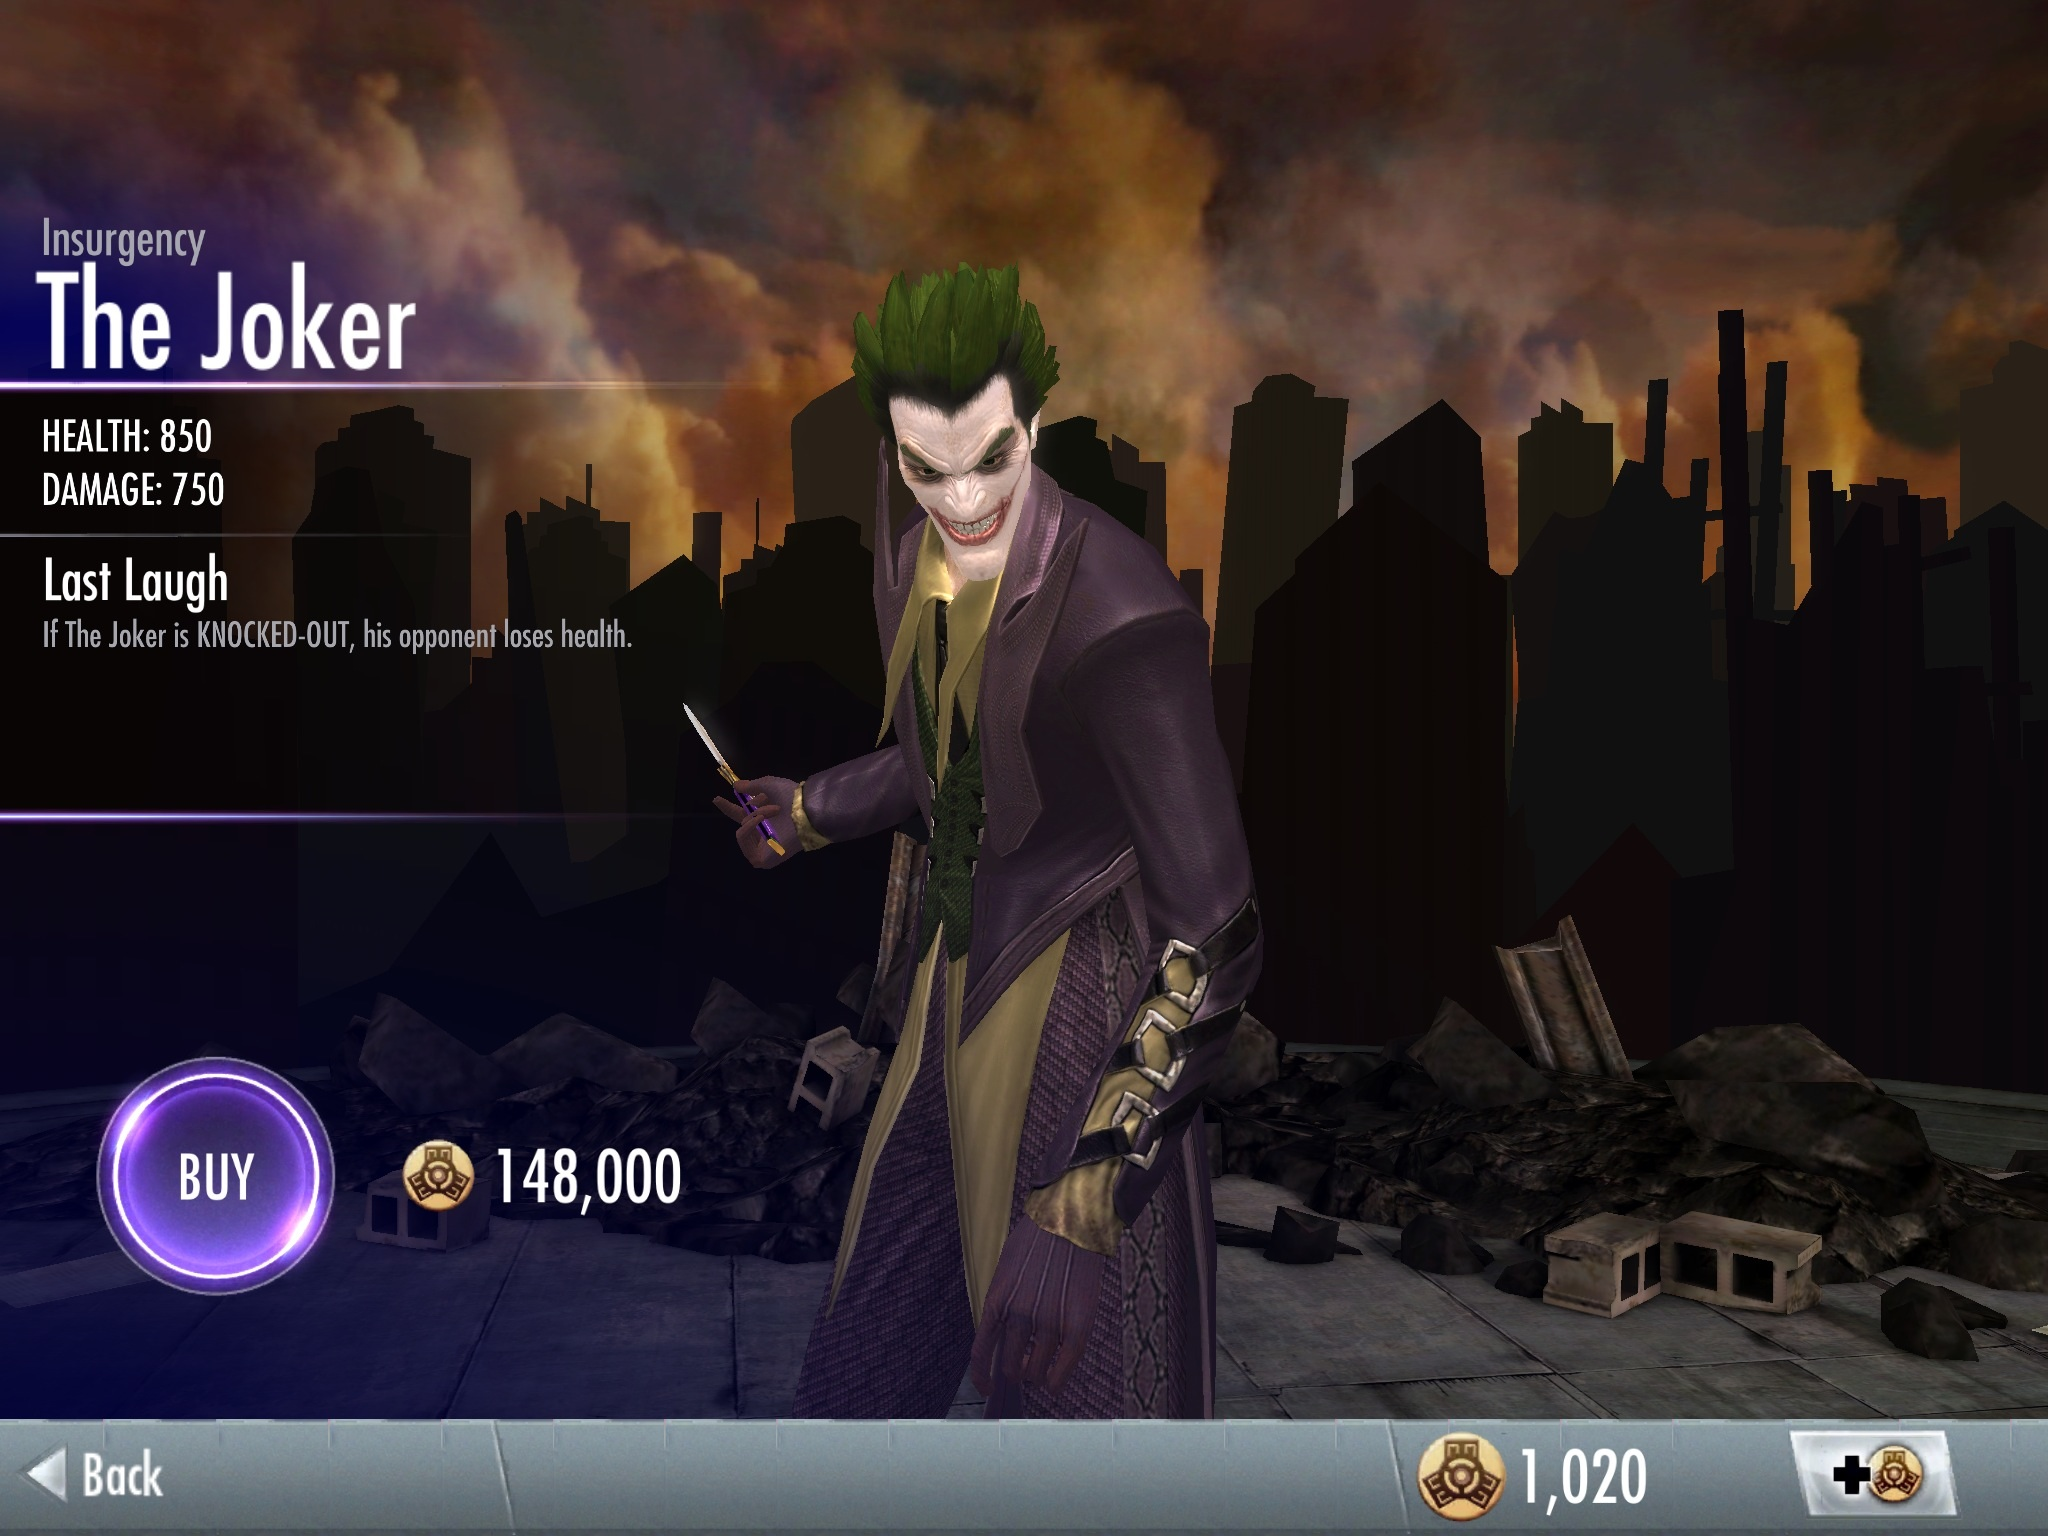 The Joker Injustice Insurgency Image - Insurgency Jok...